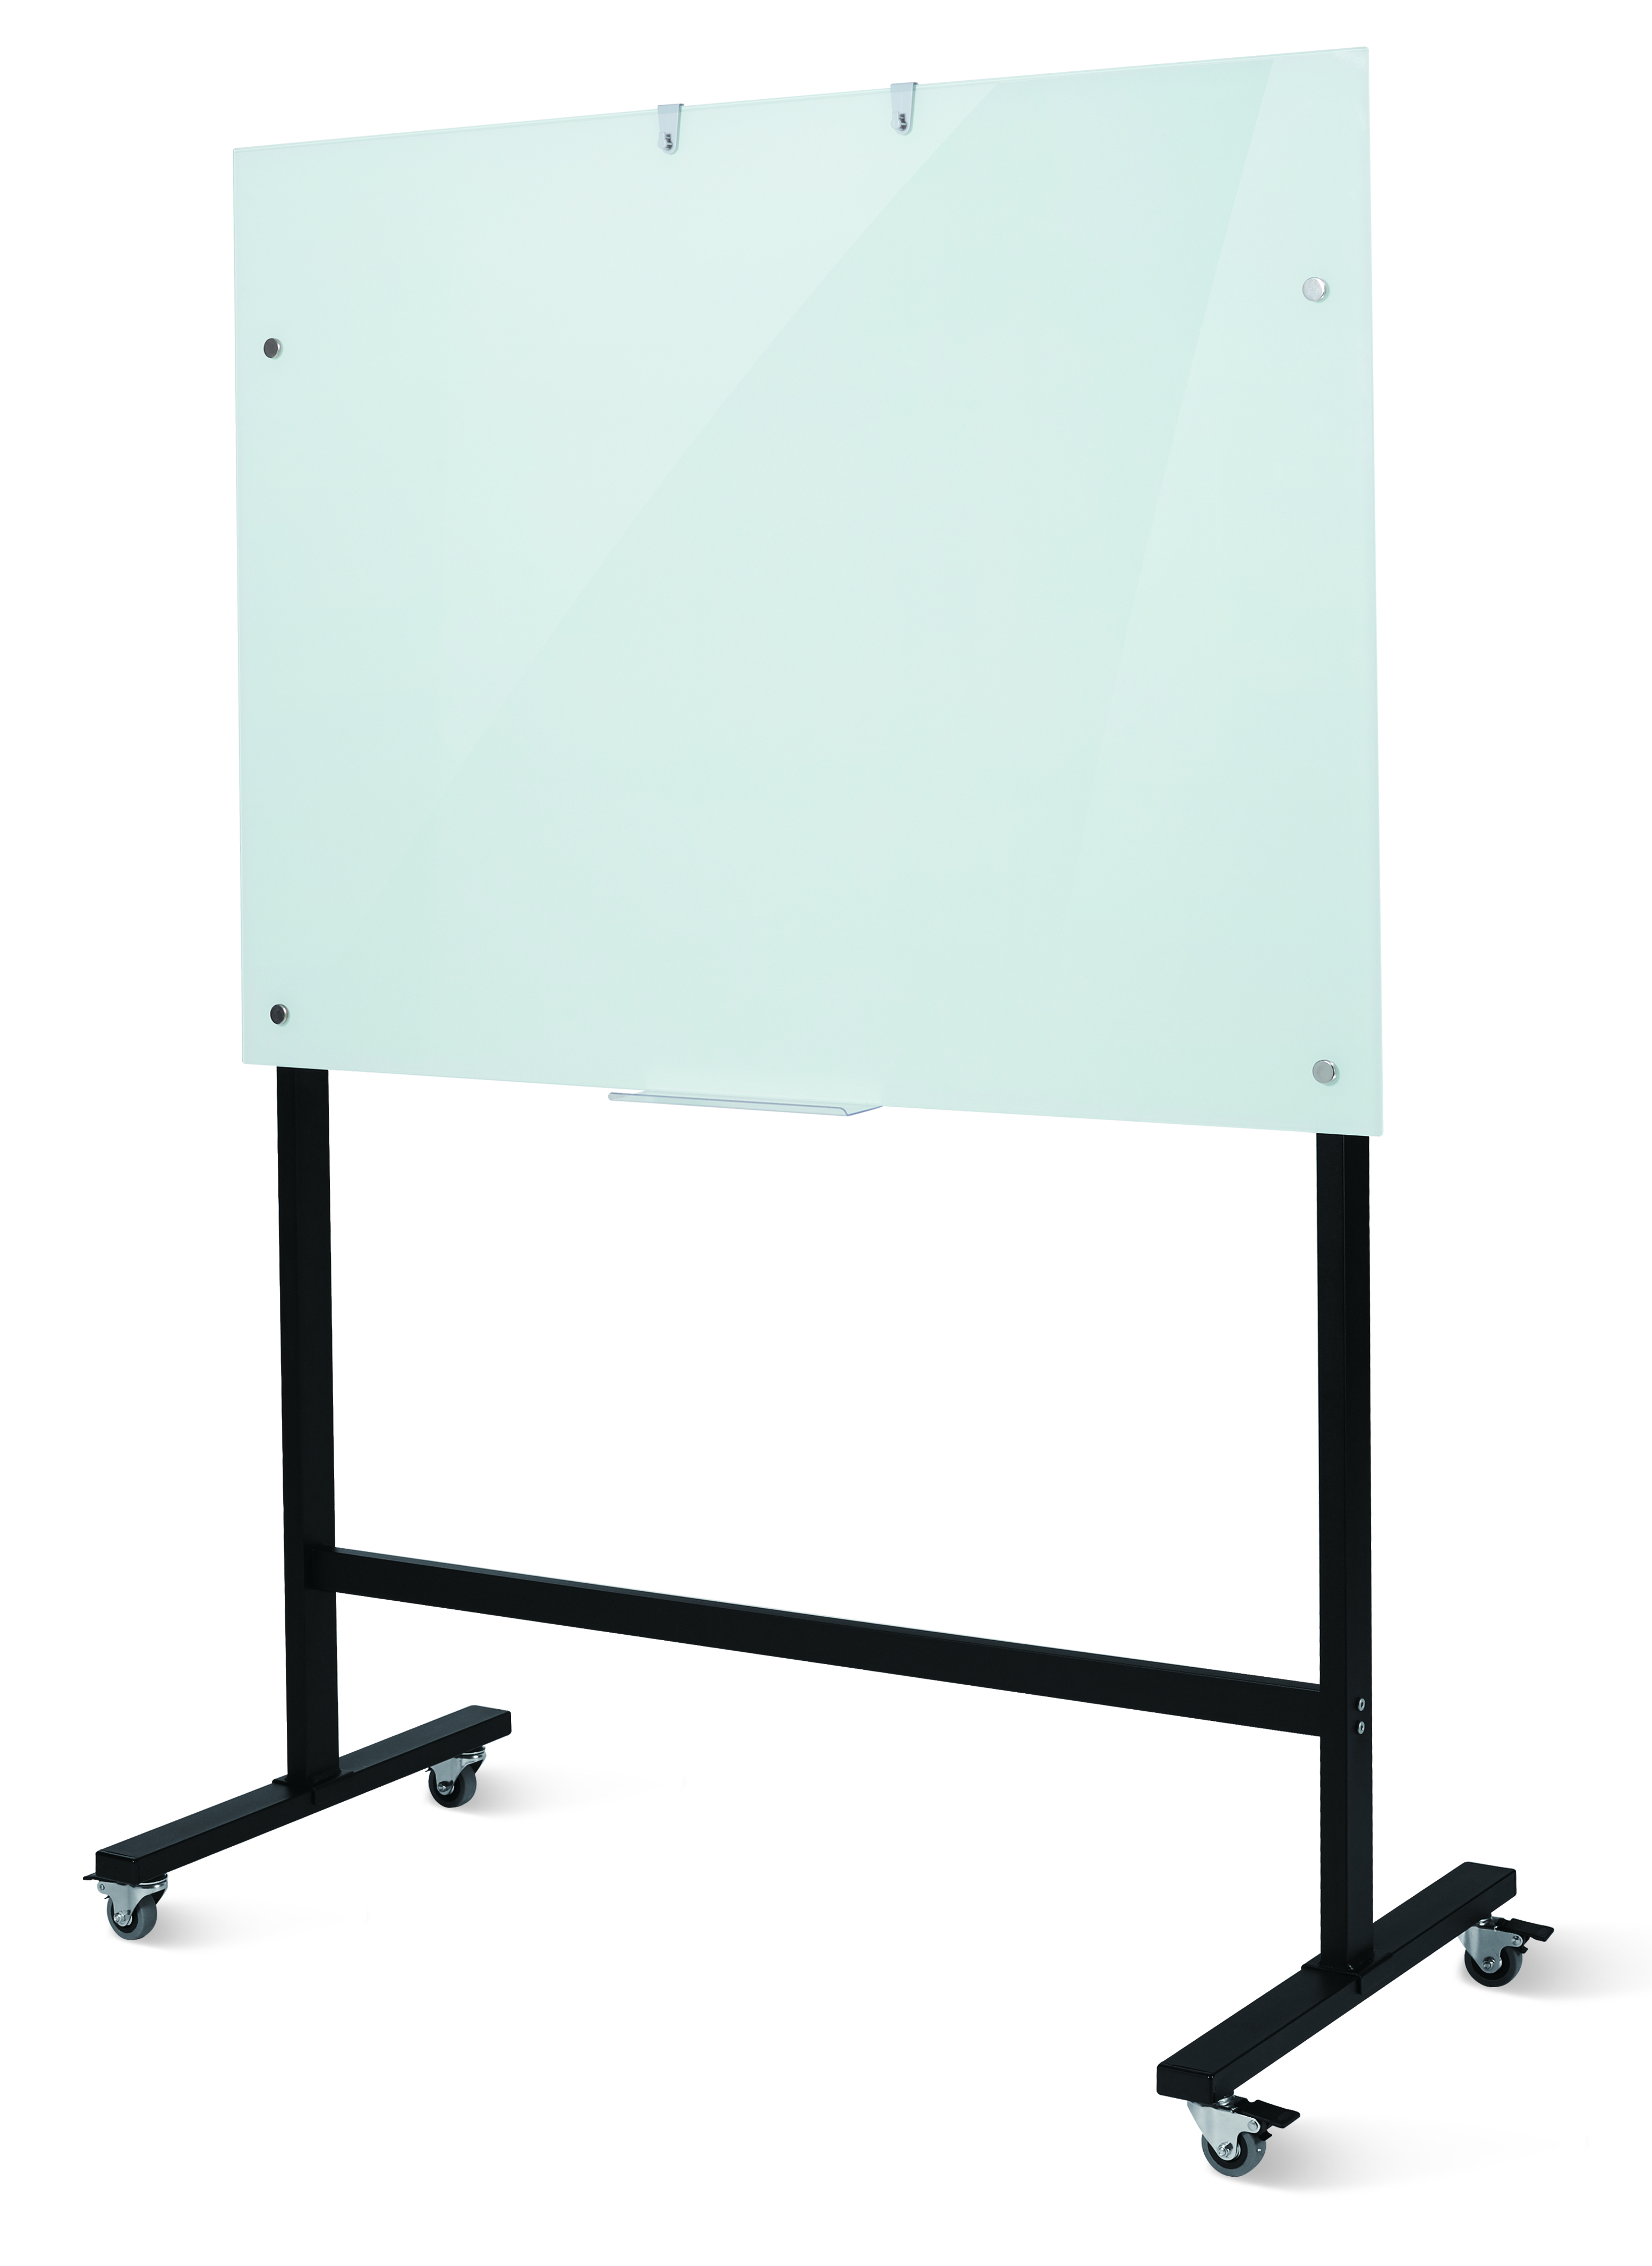 503 removable single-sided tempered glass whiteboard